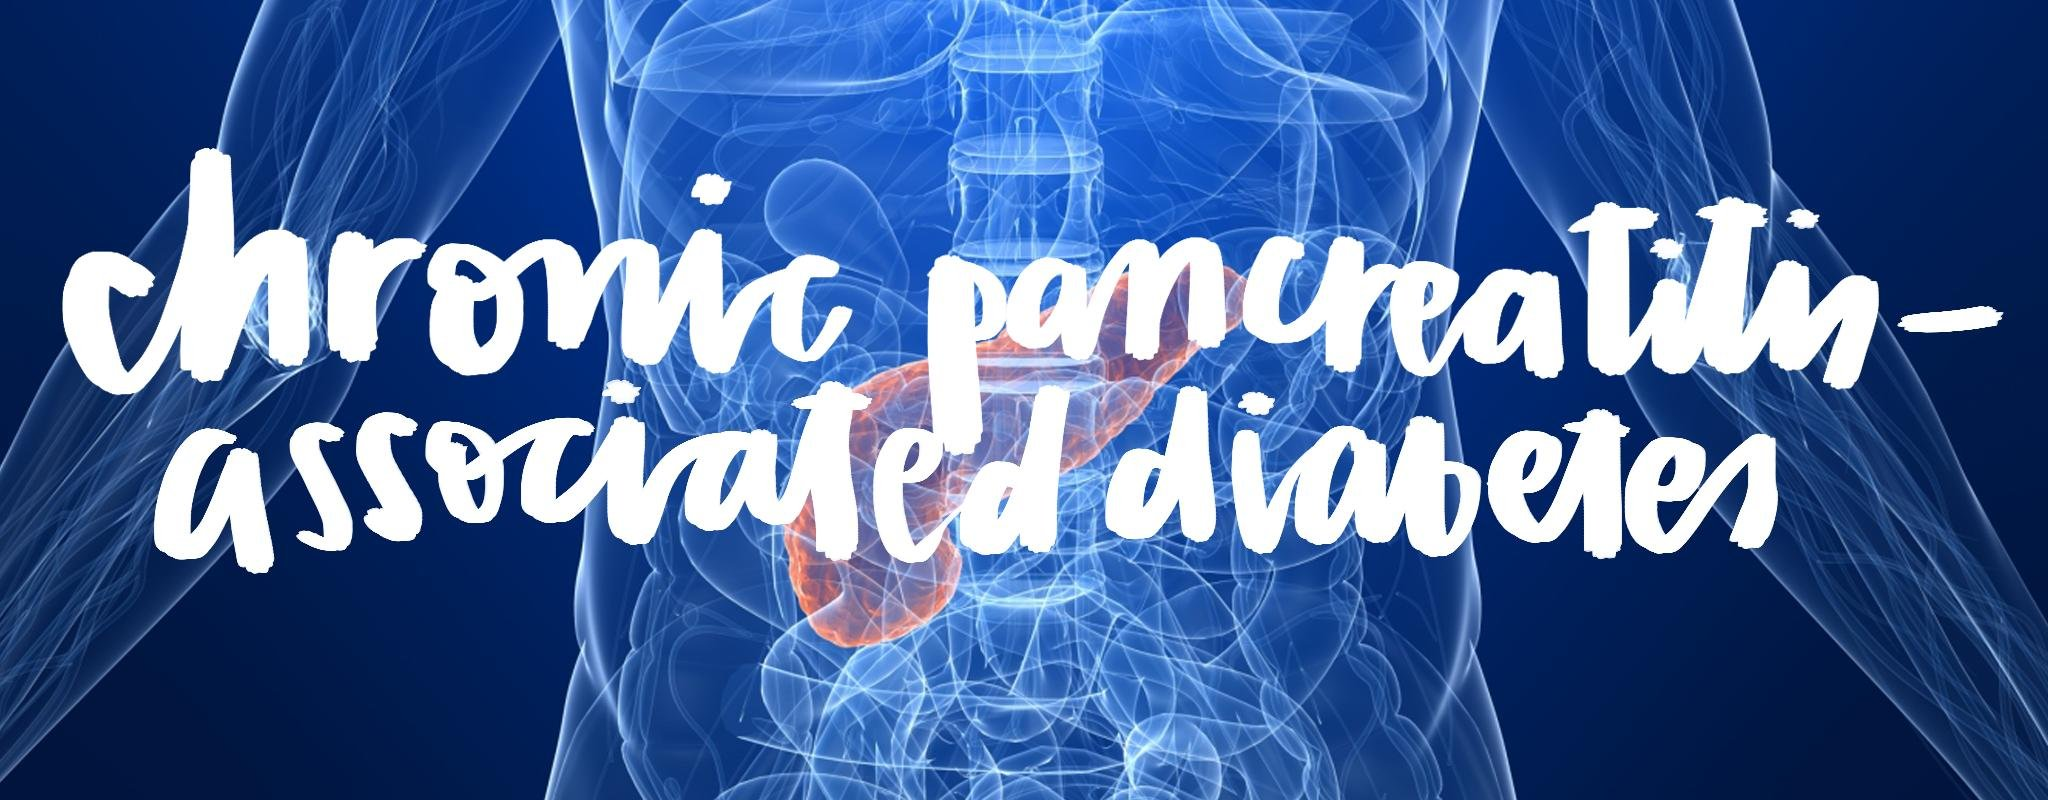 What Is Chronic Pancreatitis-associated Diabetes?